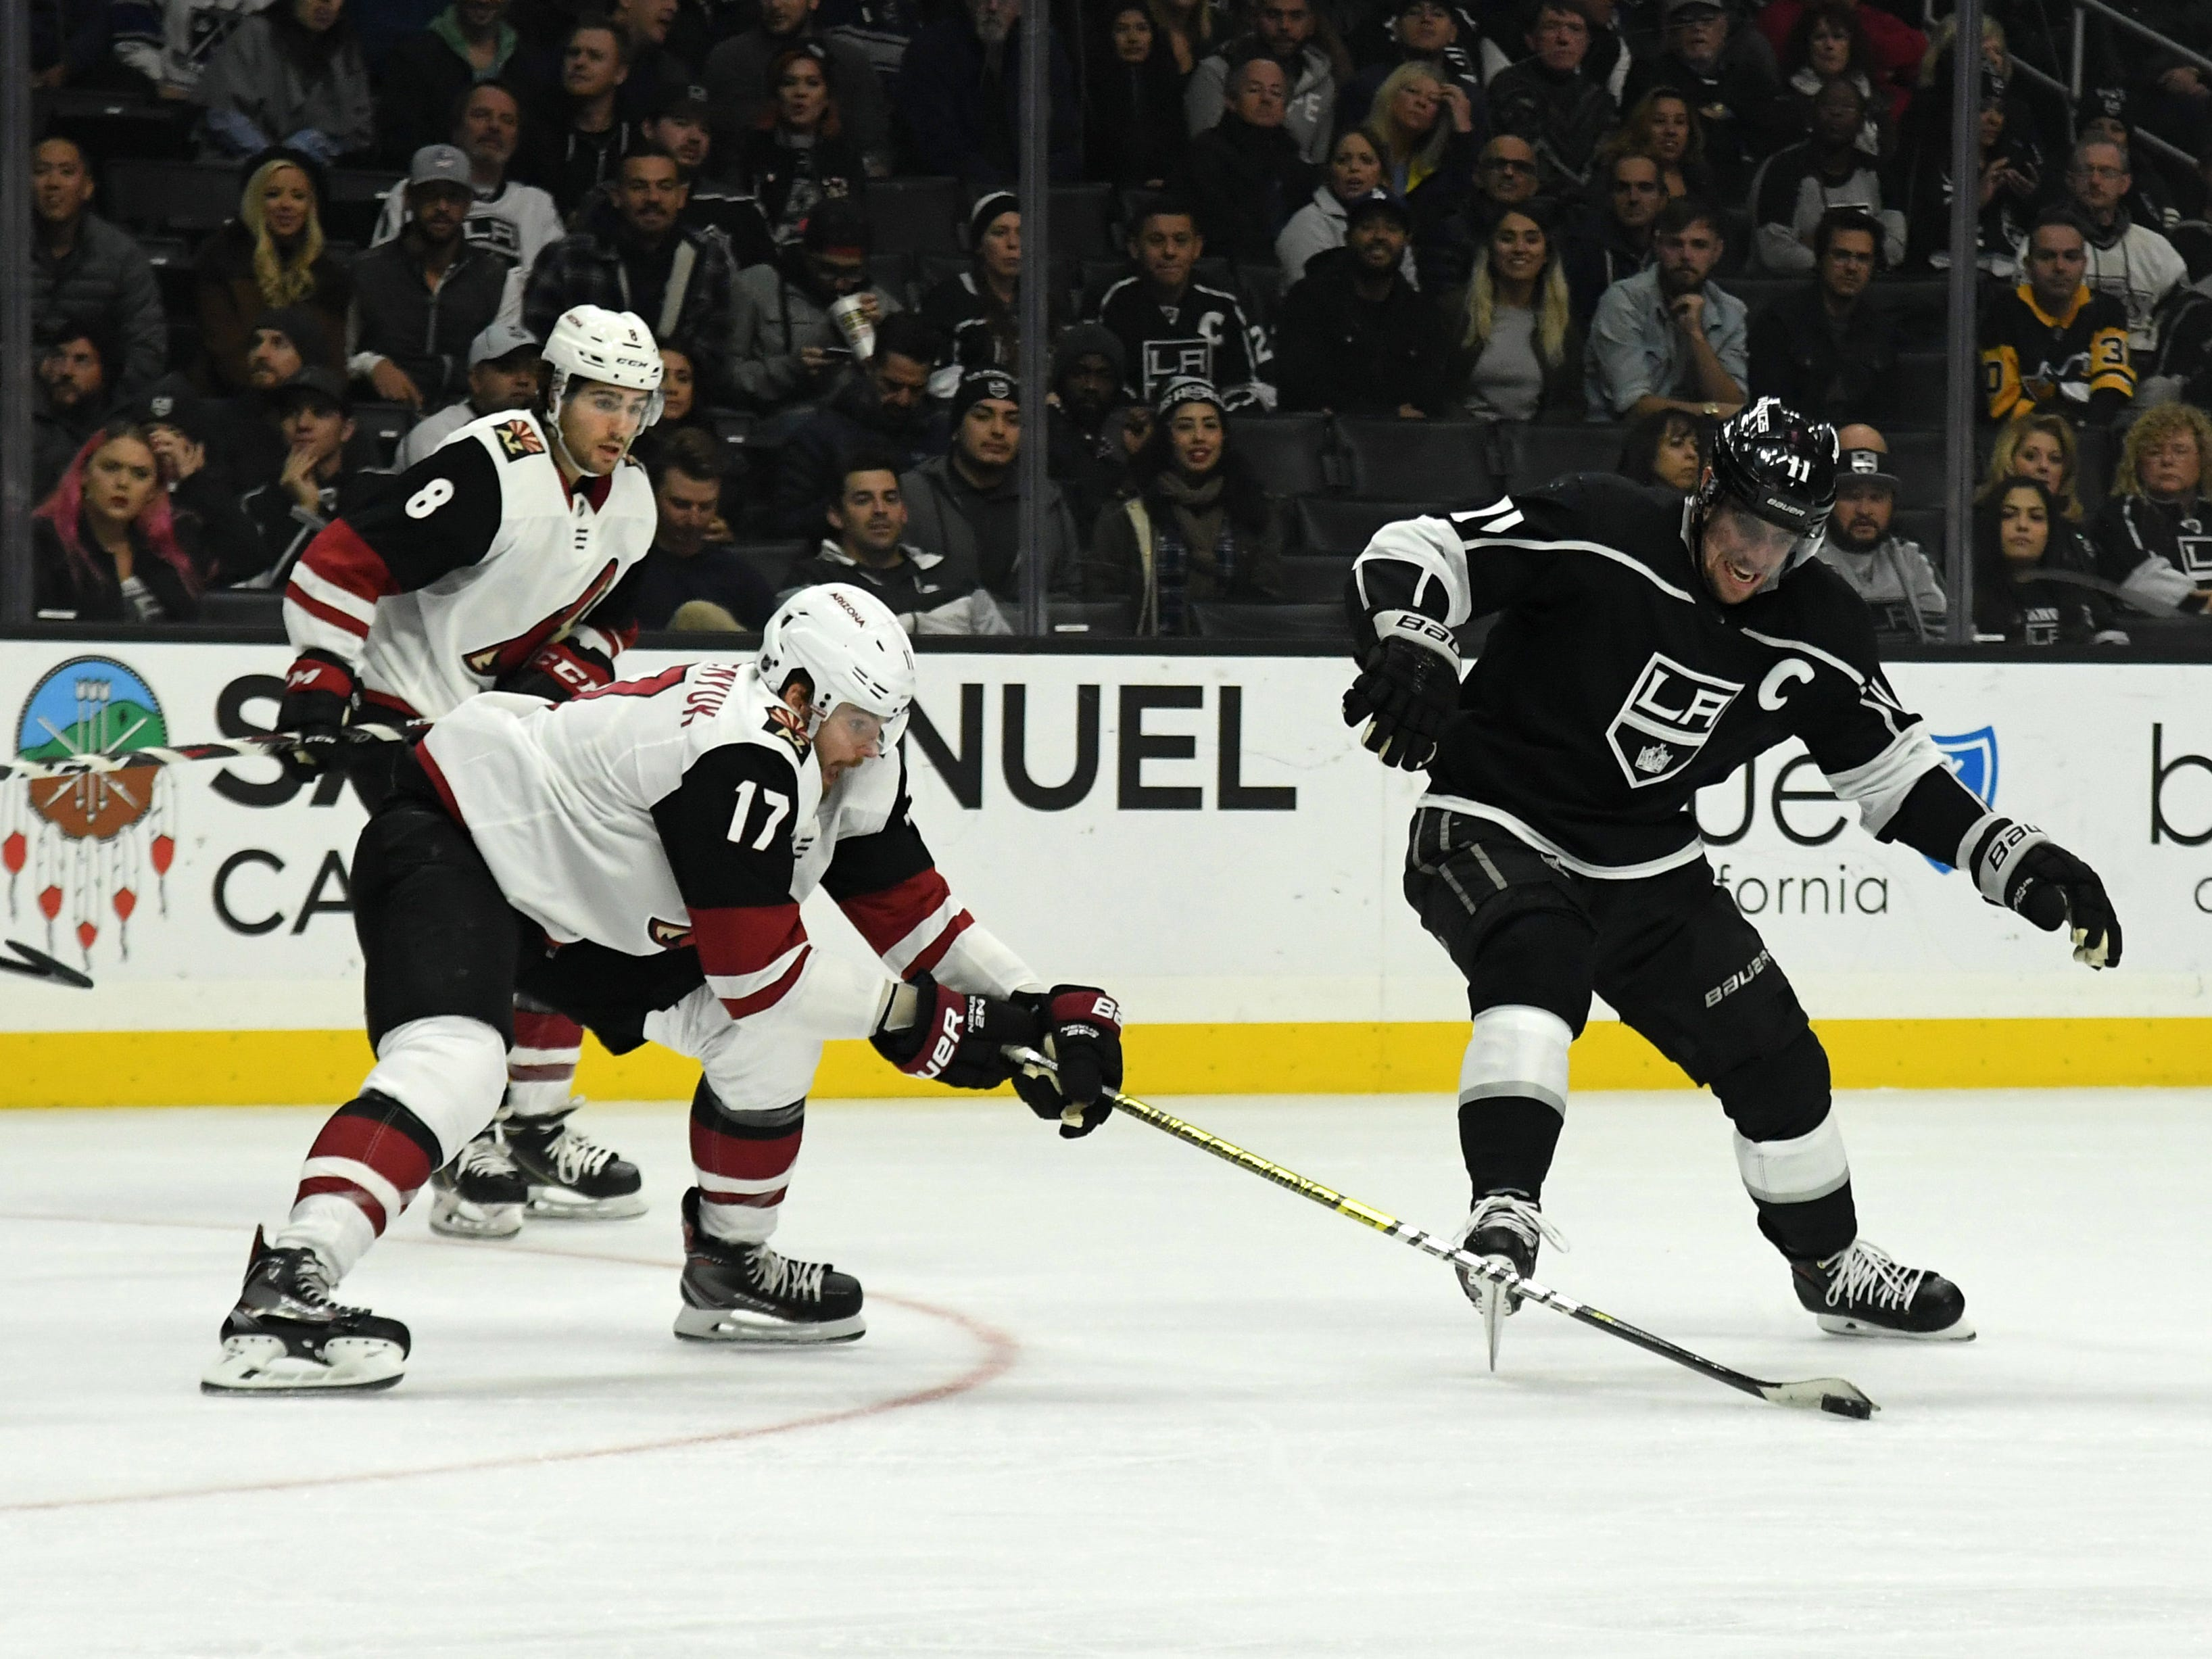 Dec 4, 2018; Los Angeles, CA, USA; Arizona Coyotes center Alex Galchenyuk (17) and Los Angeles Kings center Anze Kopitar (11) battle for the puck in the first period at Staples Center. Mandatory Credit: Kirby Lee-USA TODAY Sports